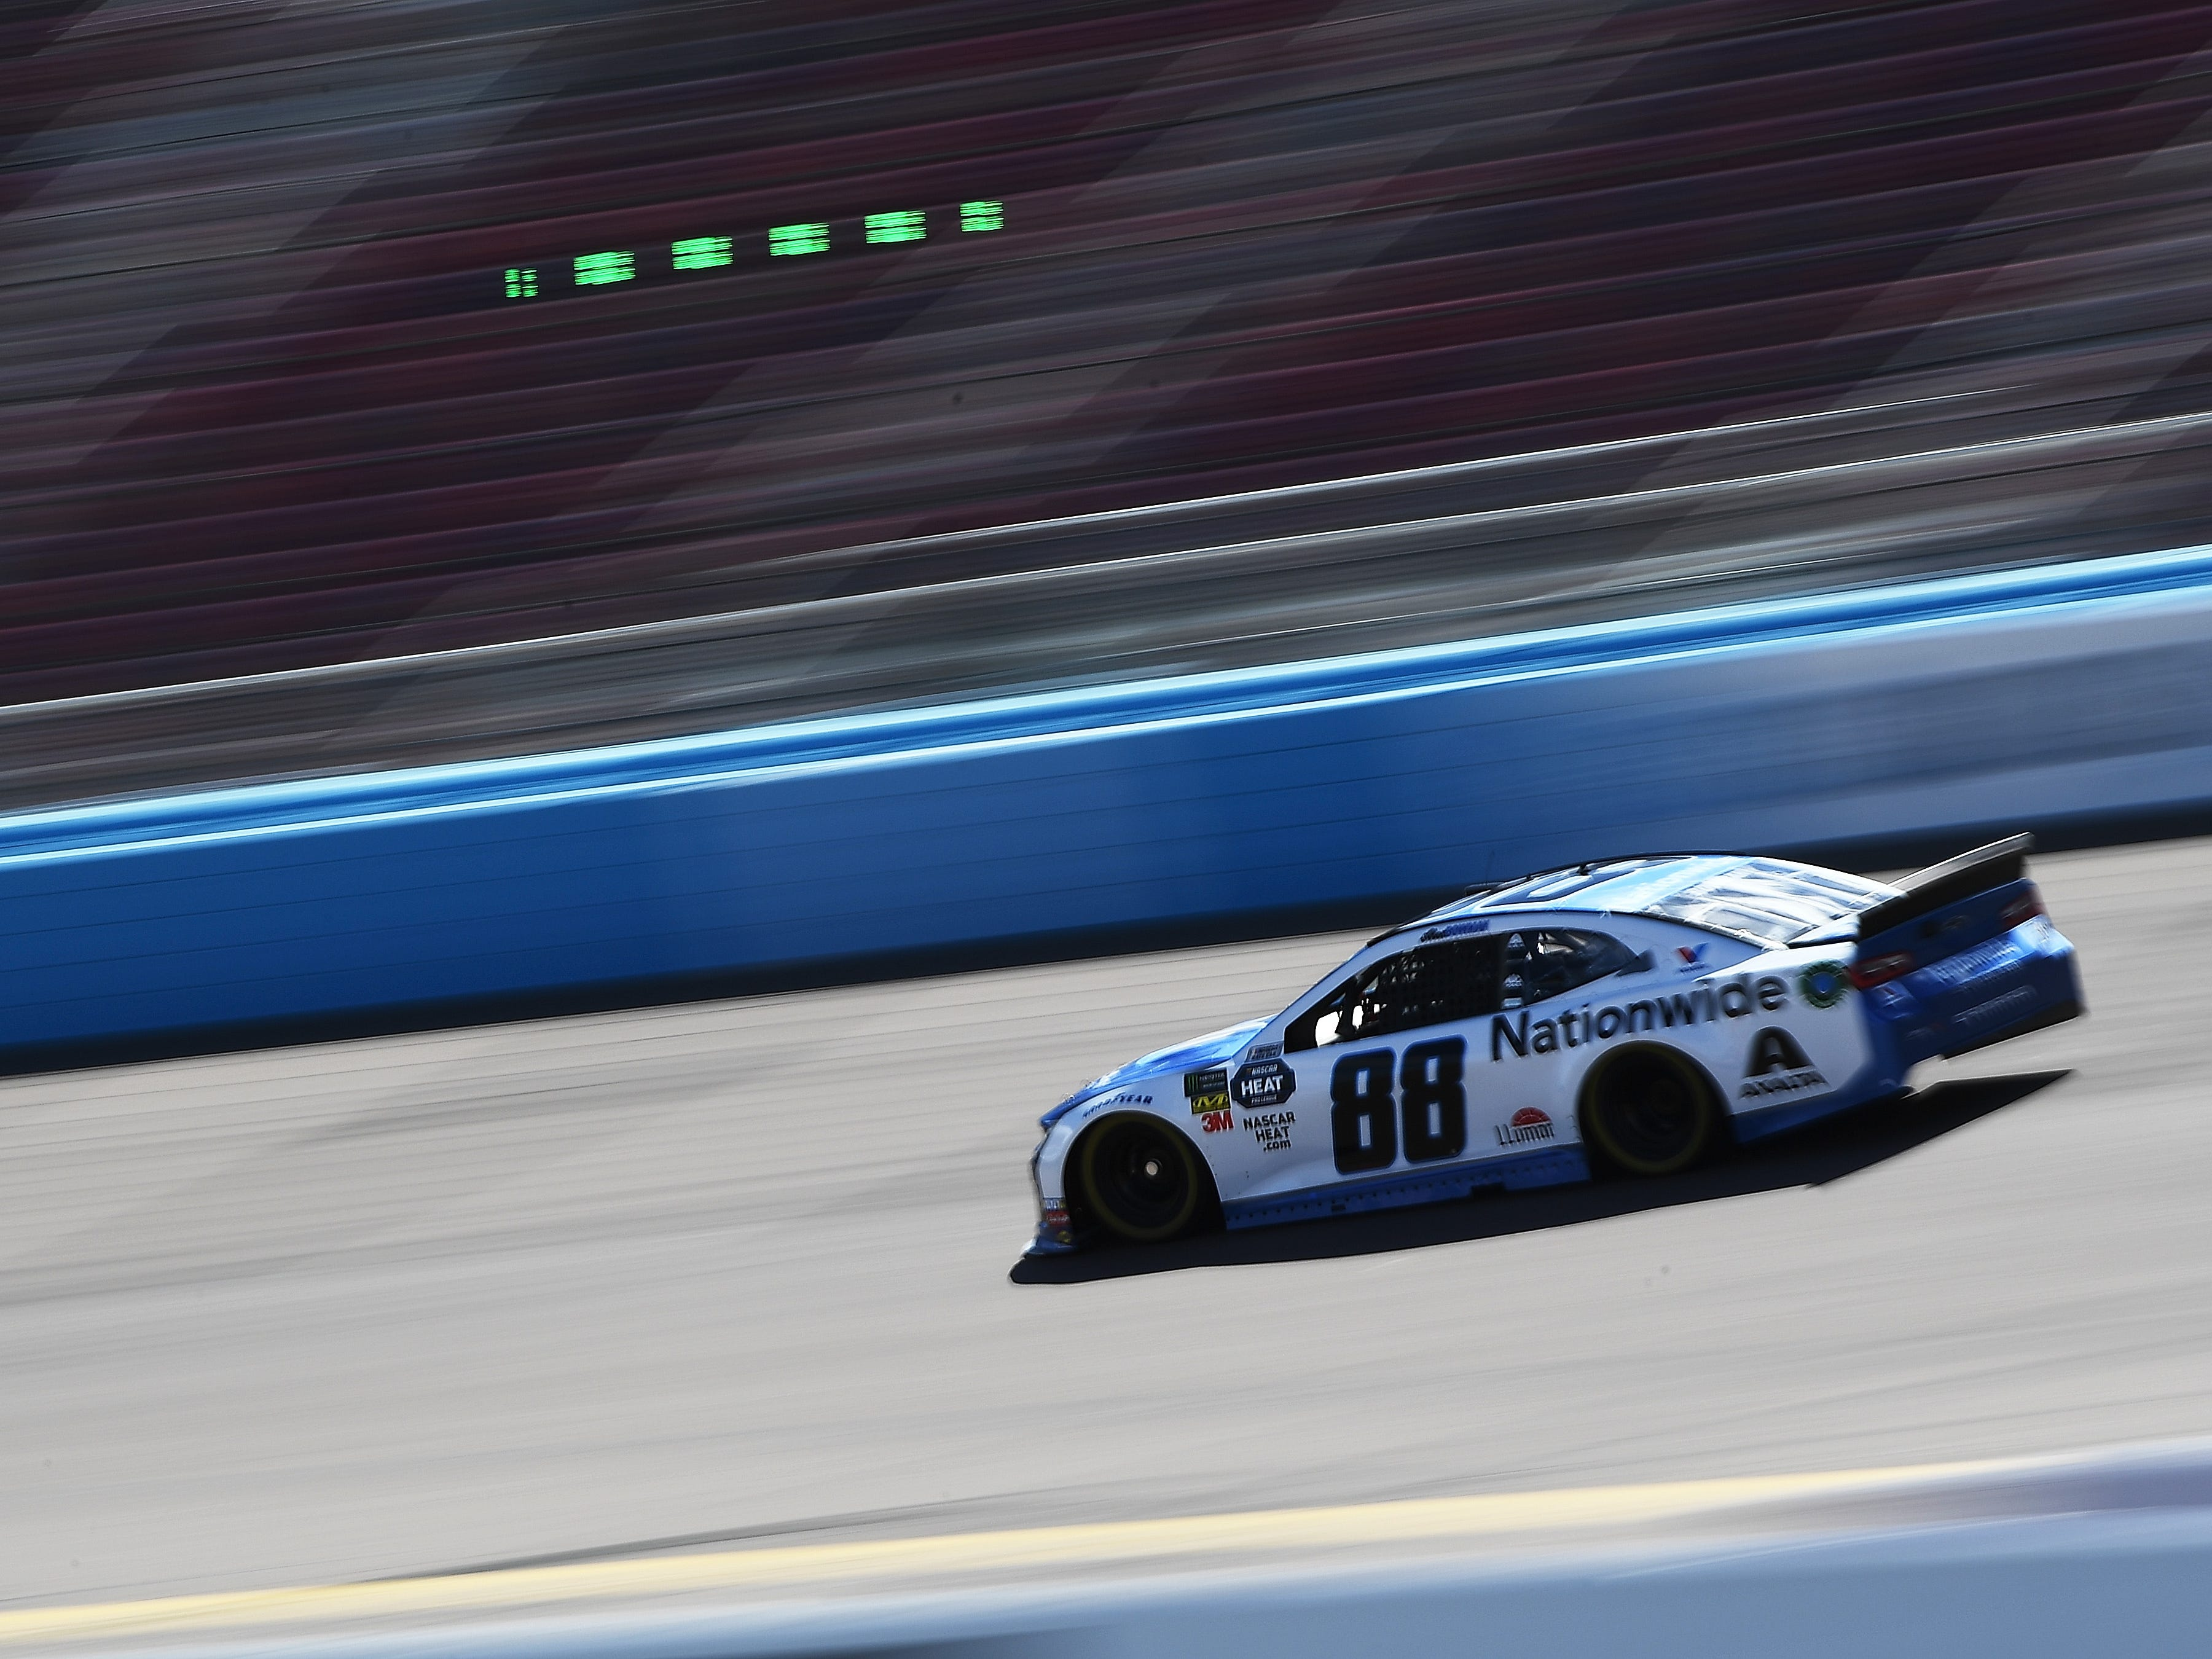 AVONDALE, AZ - MARCH 08:  Alex Bowman, driver of the #88 Nationwide Chevrolet, drives during practice for the Monster Energy NASCAR Cup Series TicketGuardian 500 at ISM Raceway on March 8, 2019 in Avondale, Arizona.